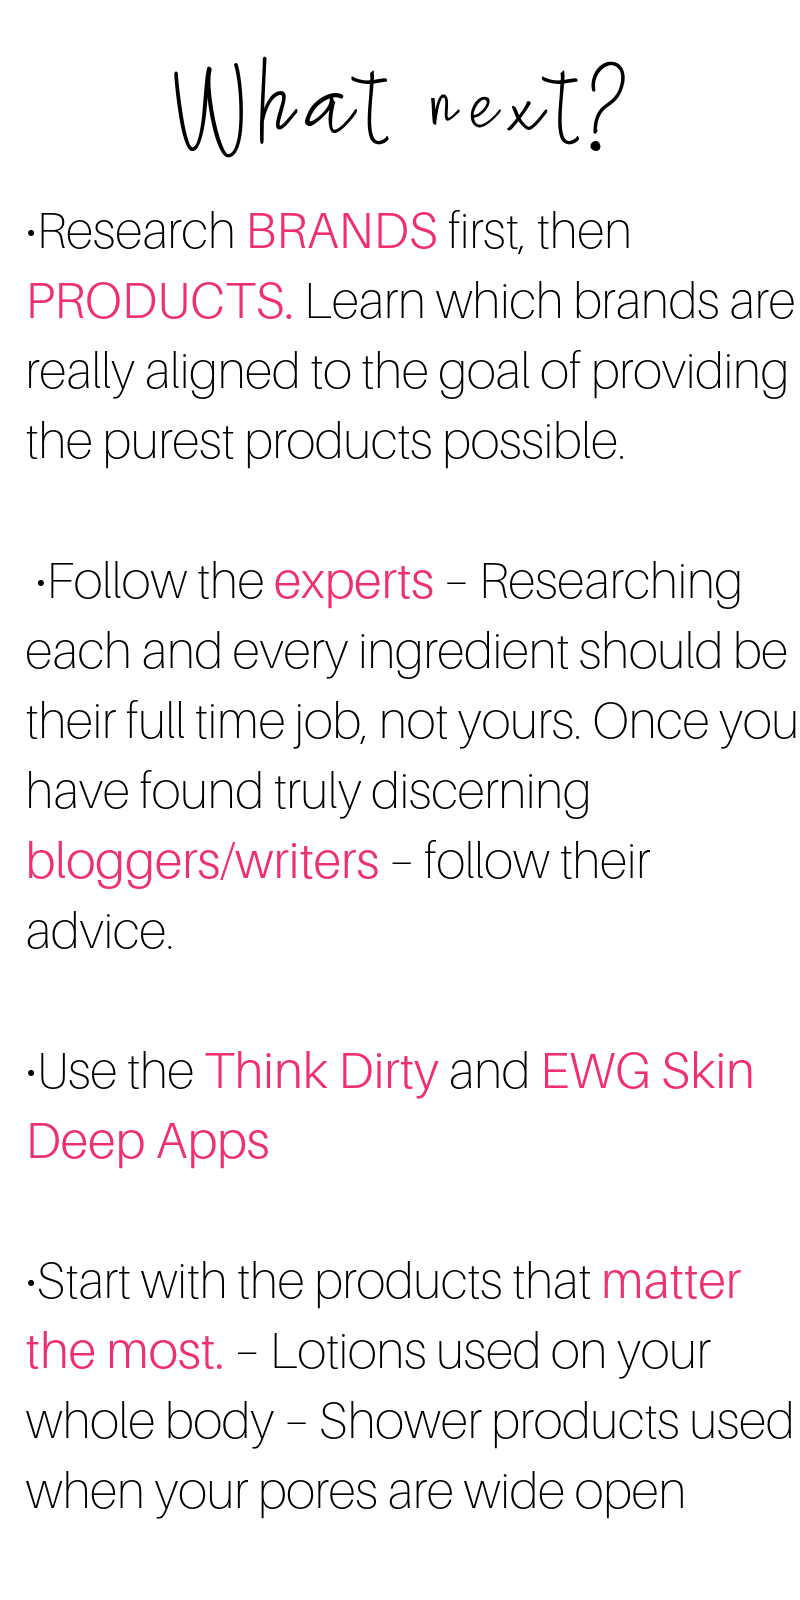 what next? research brands first, then products. follow the advice of expert bloggers and writers. use the think dirty and ewg skin deep apps. start with the products that matter the most, such as lotions and shower products